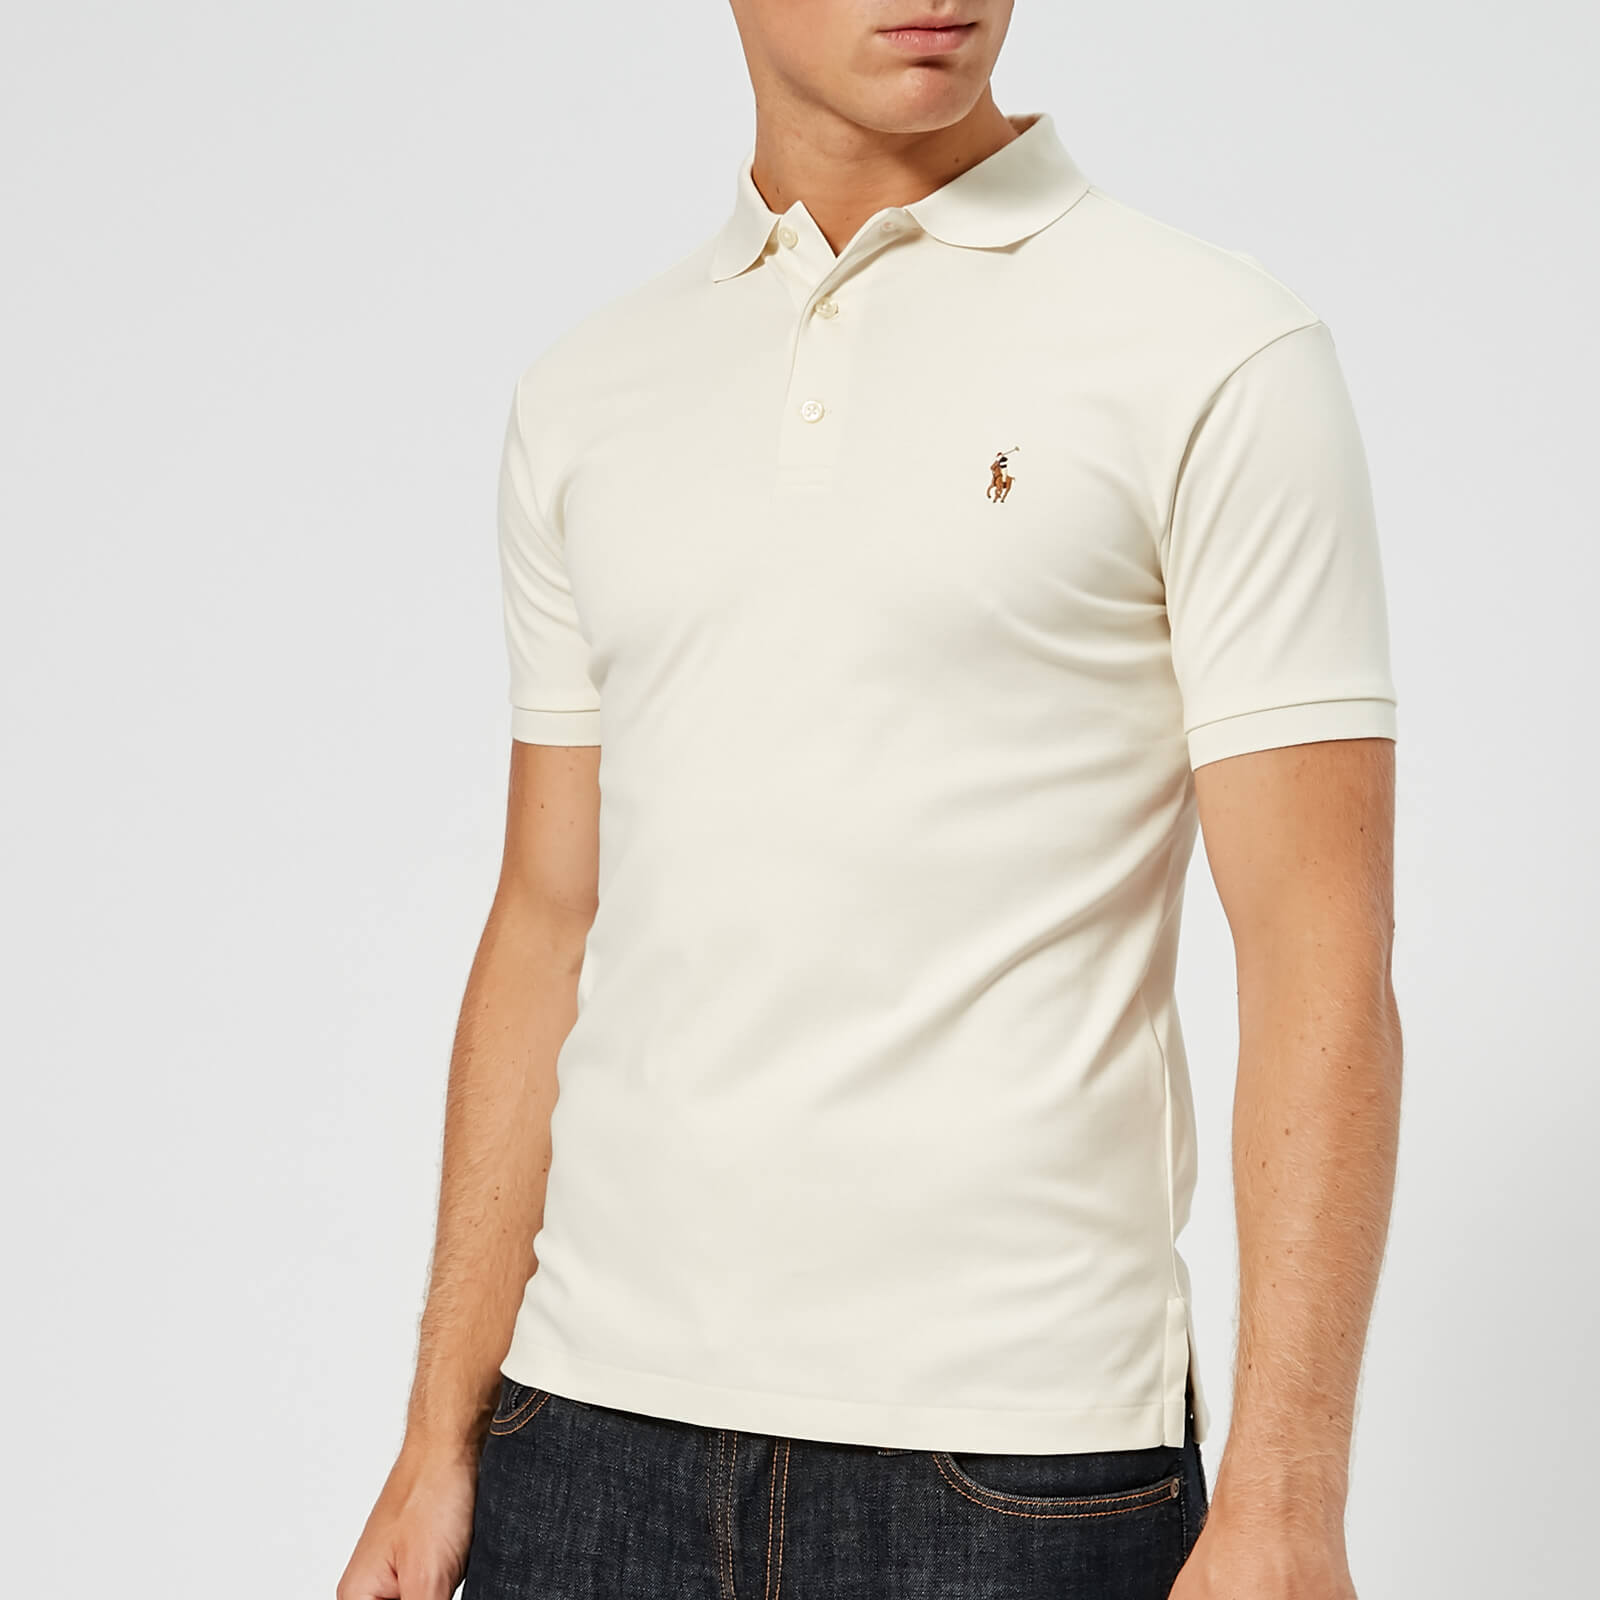 6b6b7df3 Polo Ralph Lauren Men's Slim Fit Pima Polo Shirt - Chic Cream - Free UK  Delivery over £50